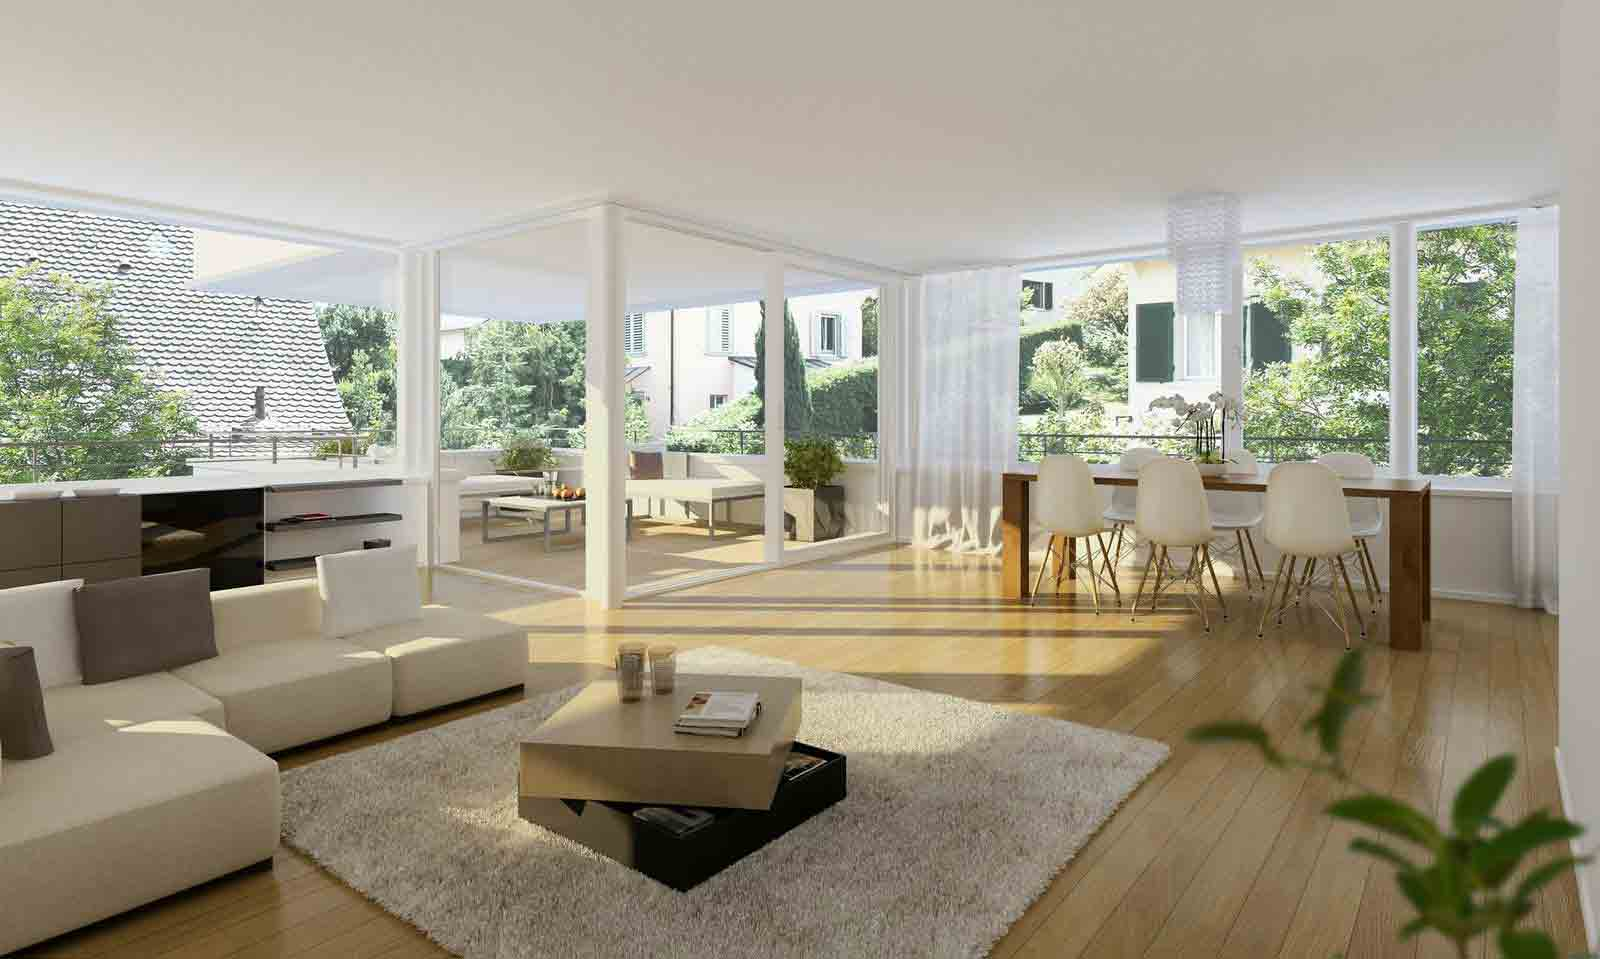 Krieger immobilien design erdmute krieger for In immobilien